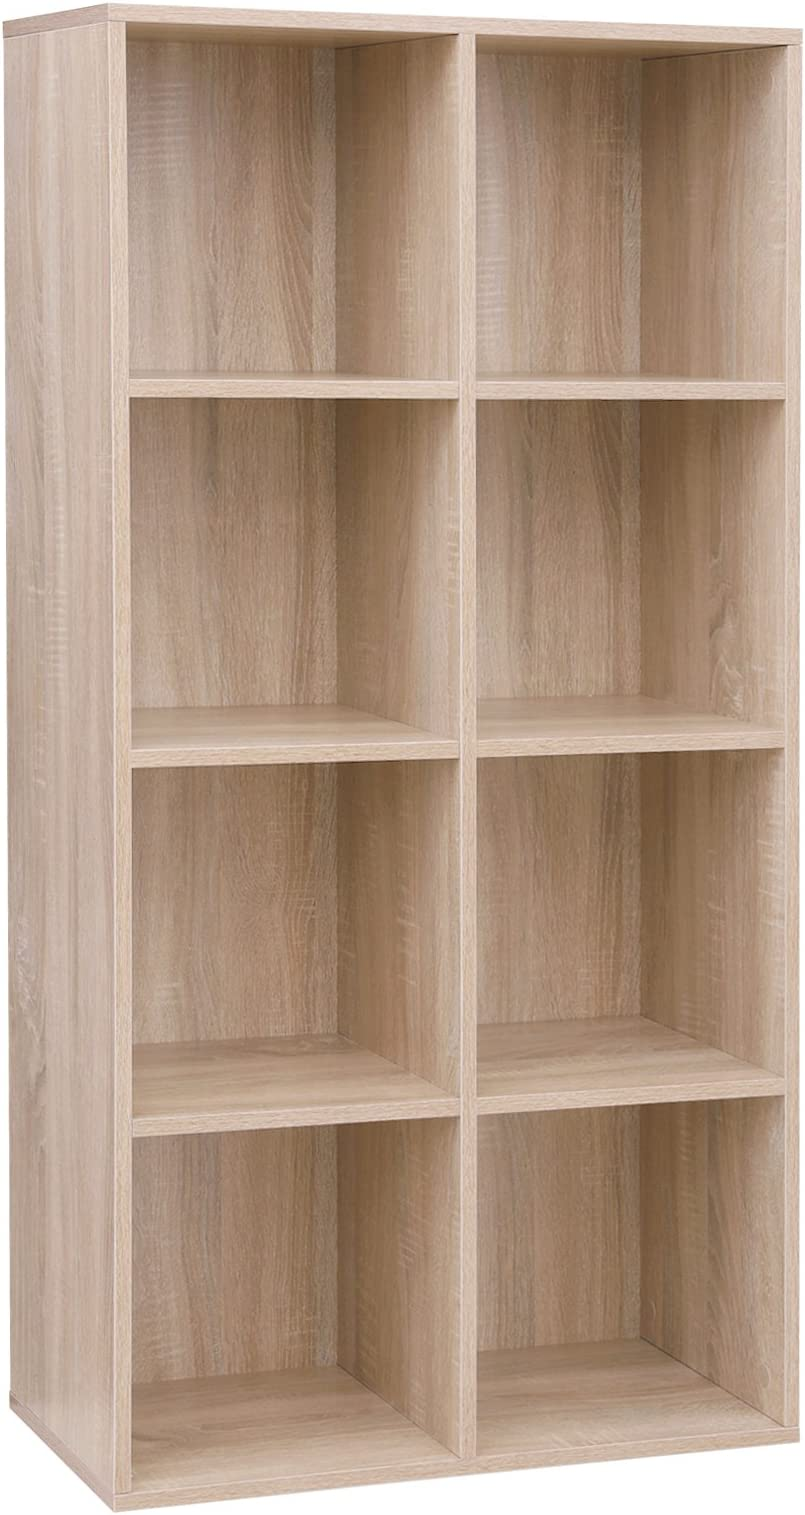 amazon co uk bookcases cabinets racks shelves home kitchen rh amazon co uk Book Case Headboard Bookcase Cabinet Combo